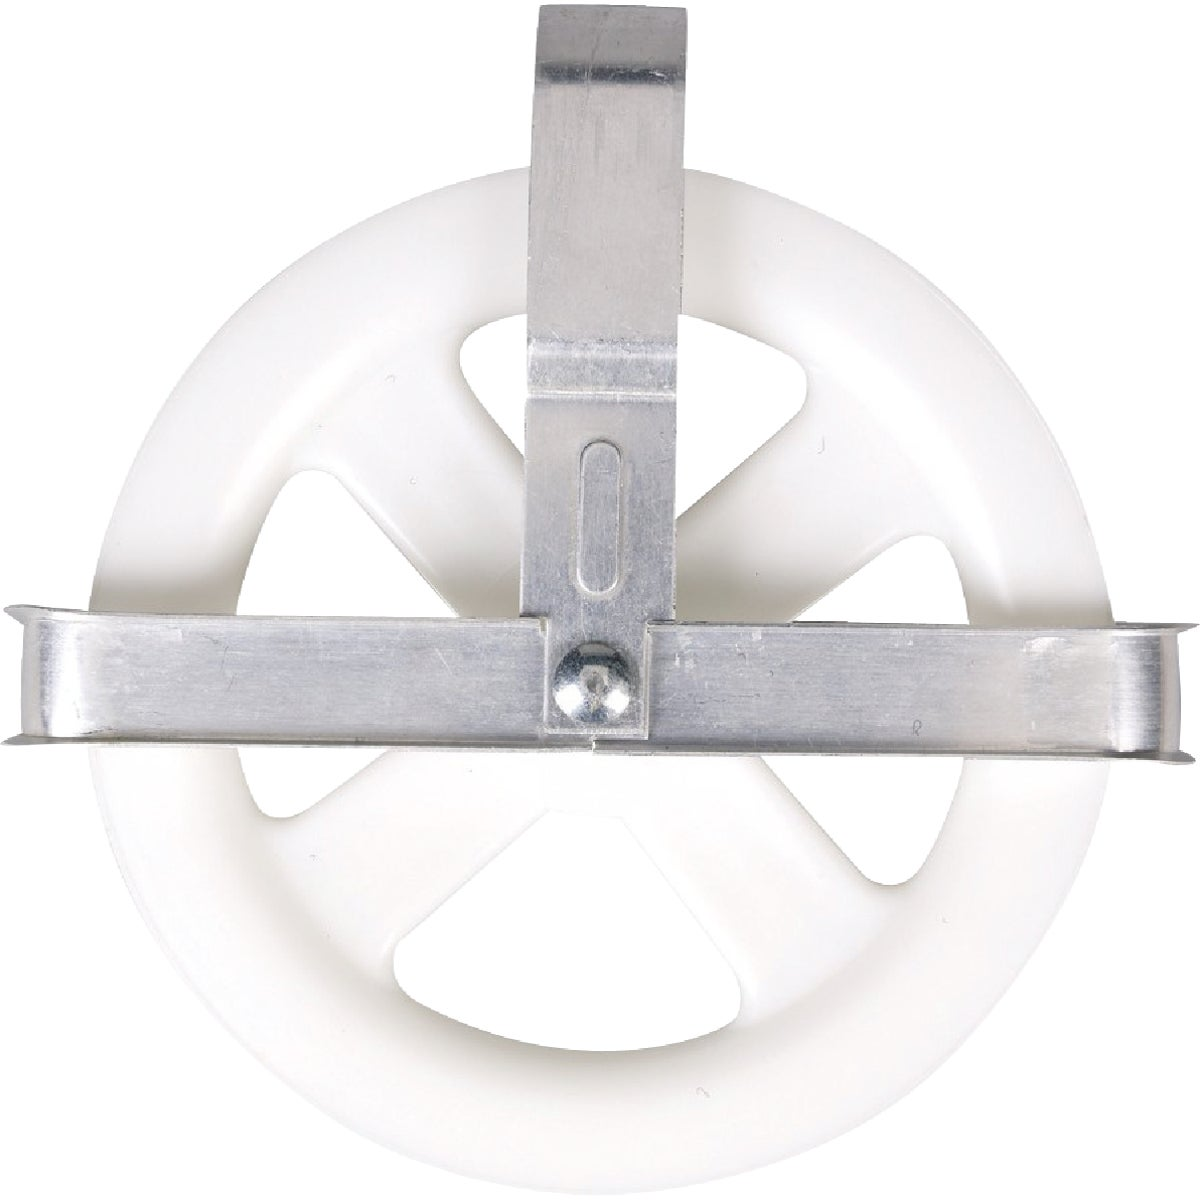 "5"" CLOTHESLINE PULLEY"